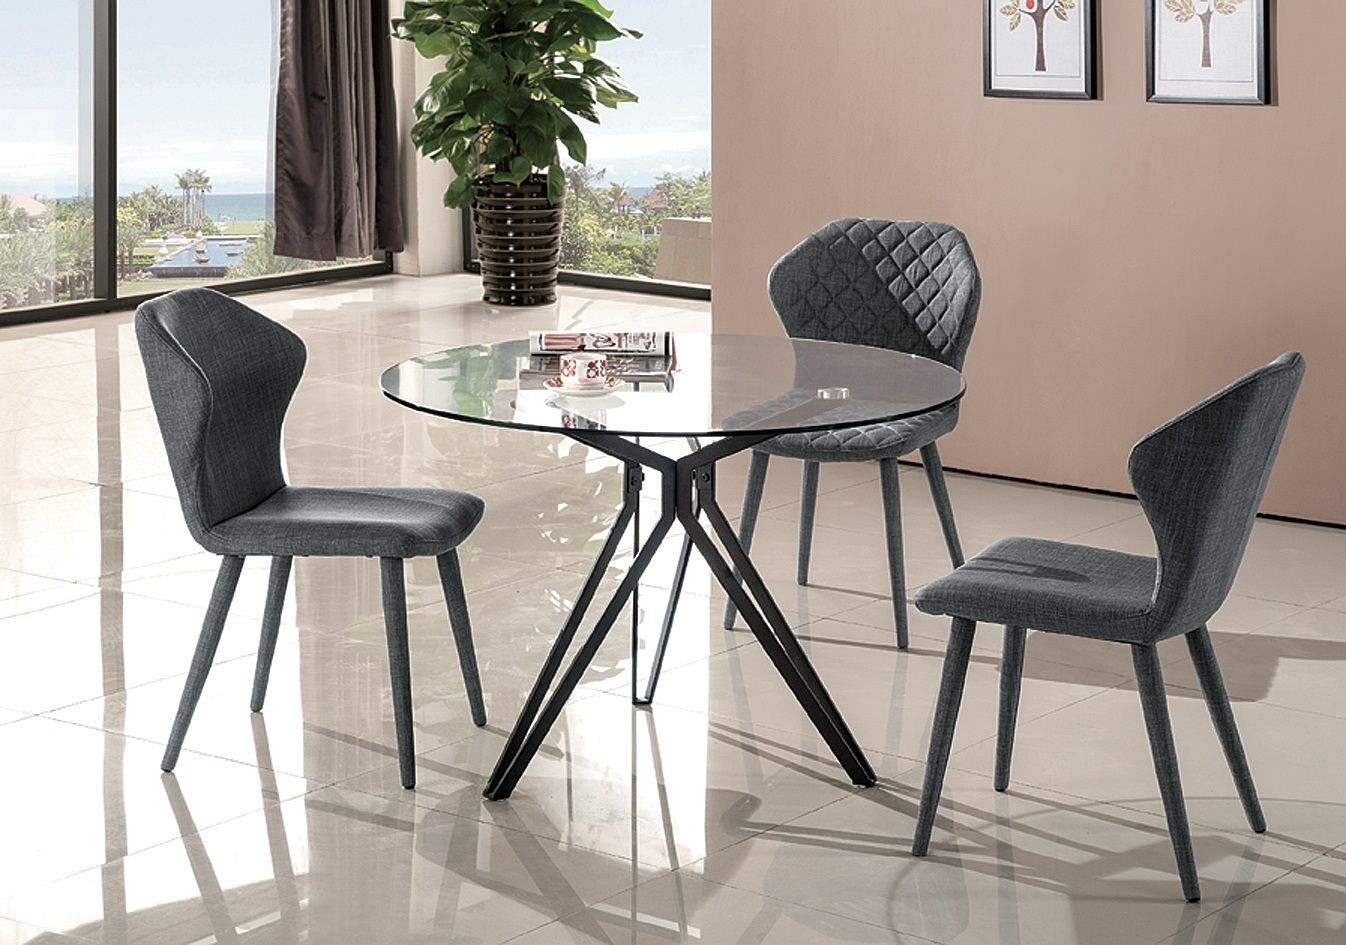 Dining Room Furniture Glass Solano Glass Round Dining Room Set From Jnm Coleman